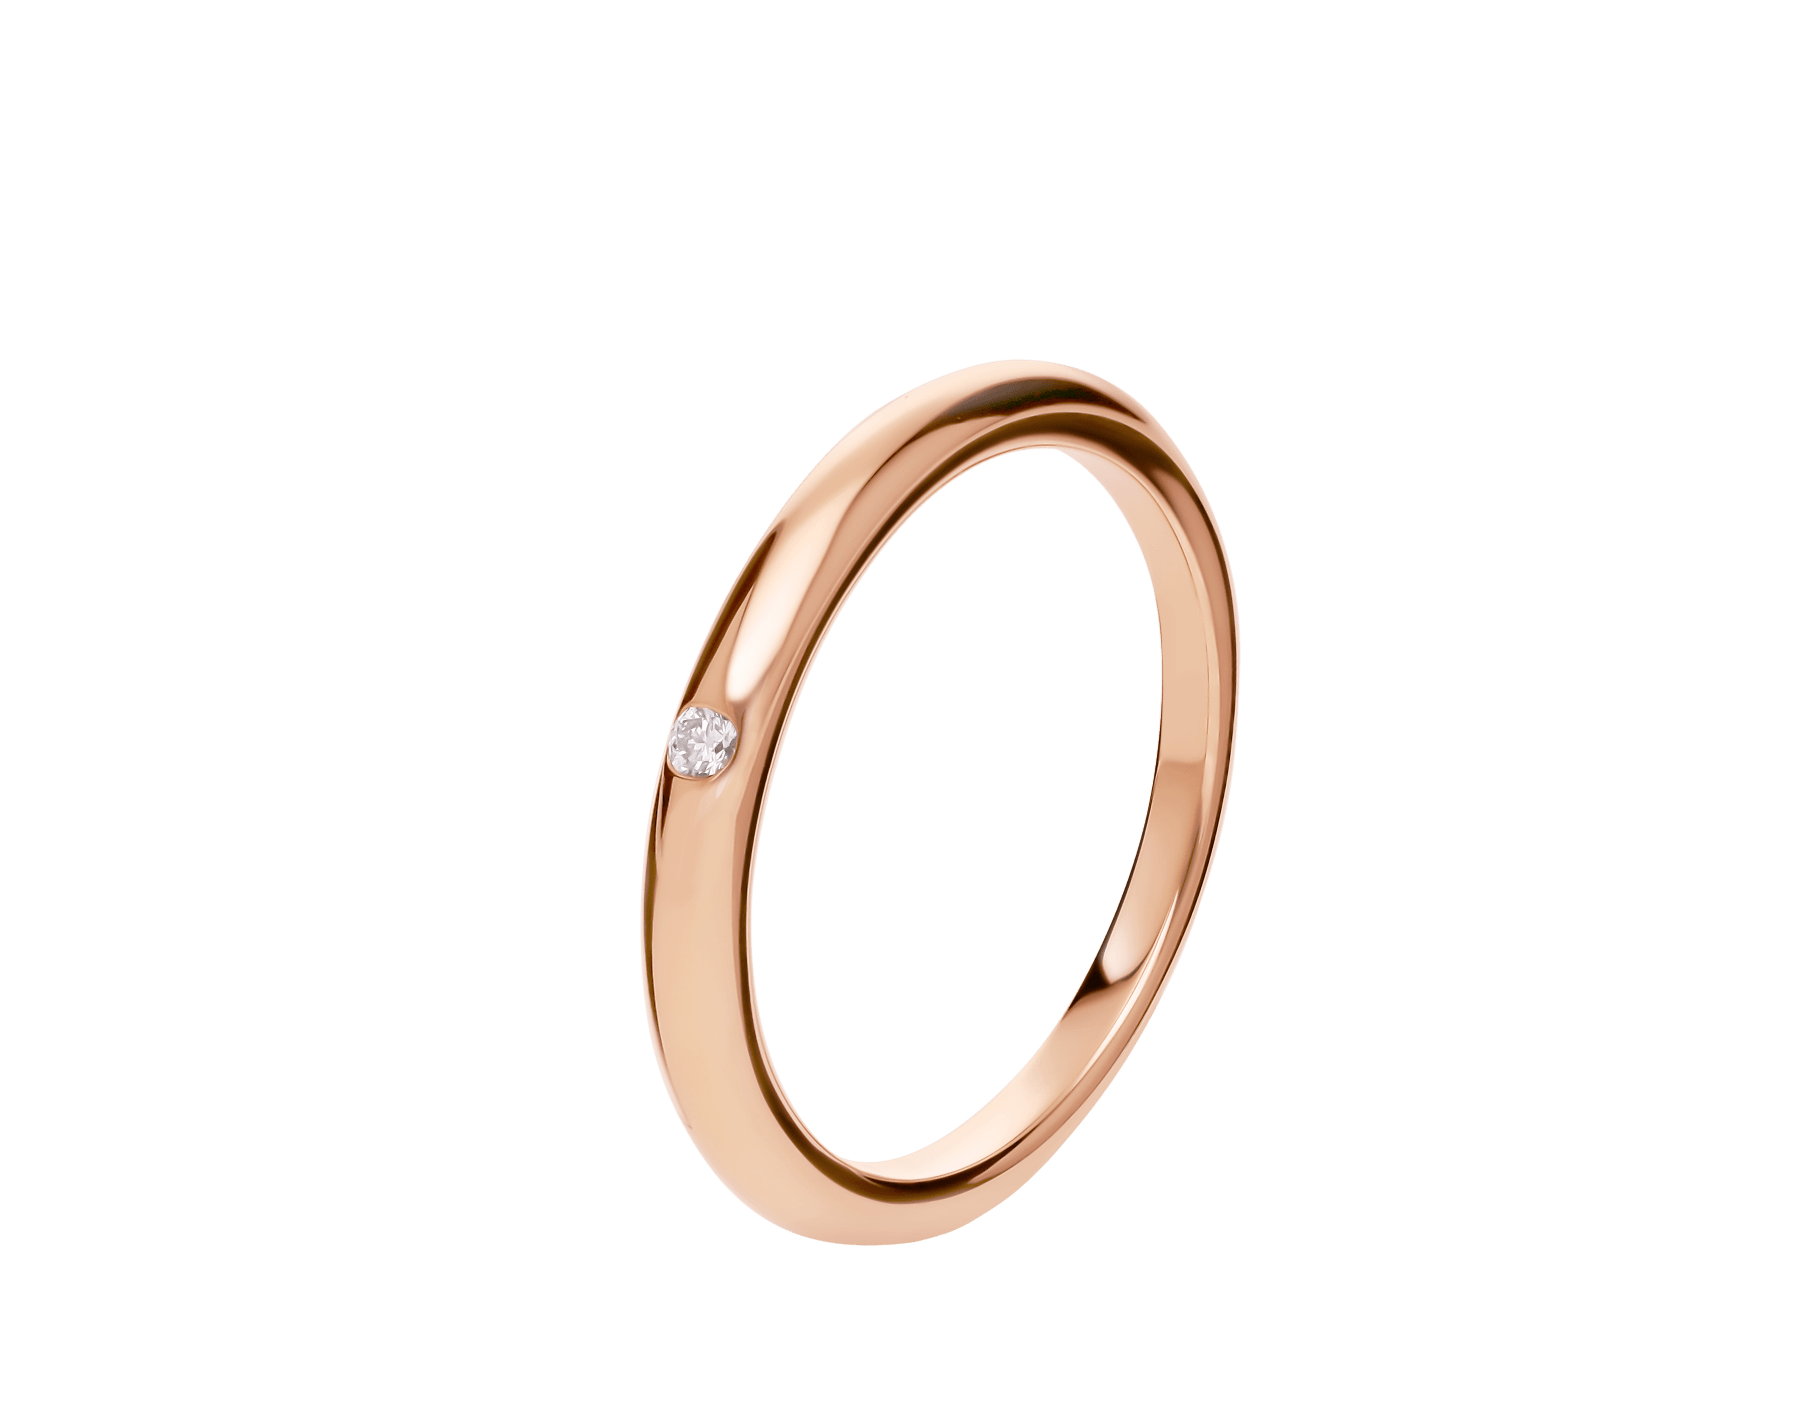 Fedi Wedding Band in 18 kt rose gold set with one diamond AN857579 image 1